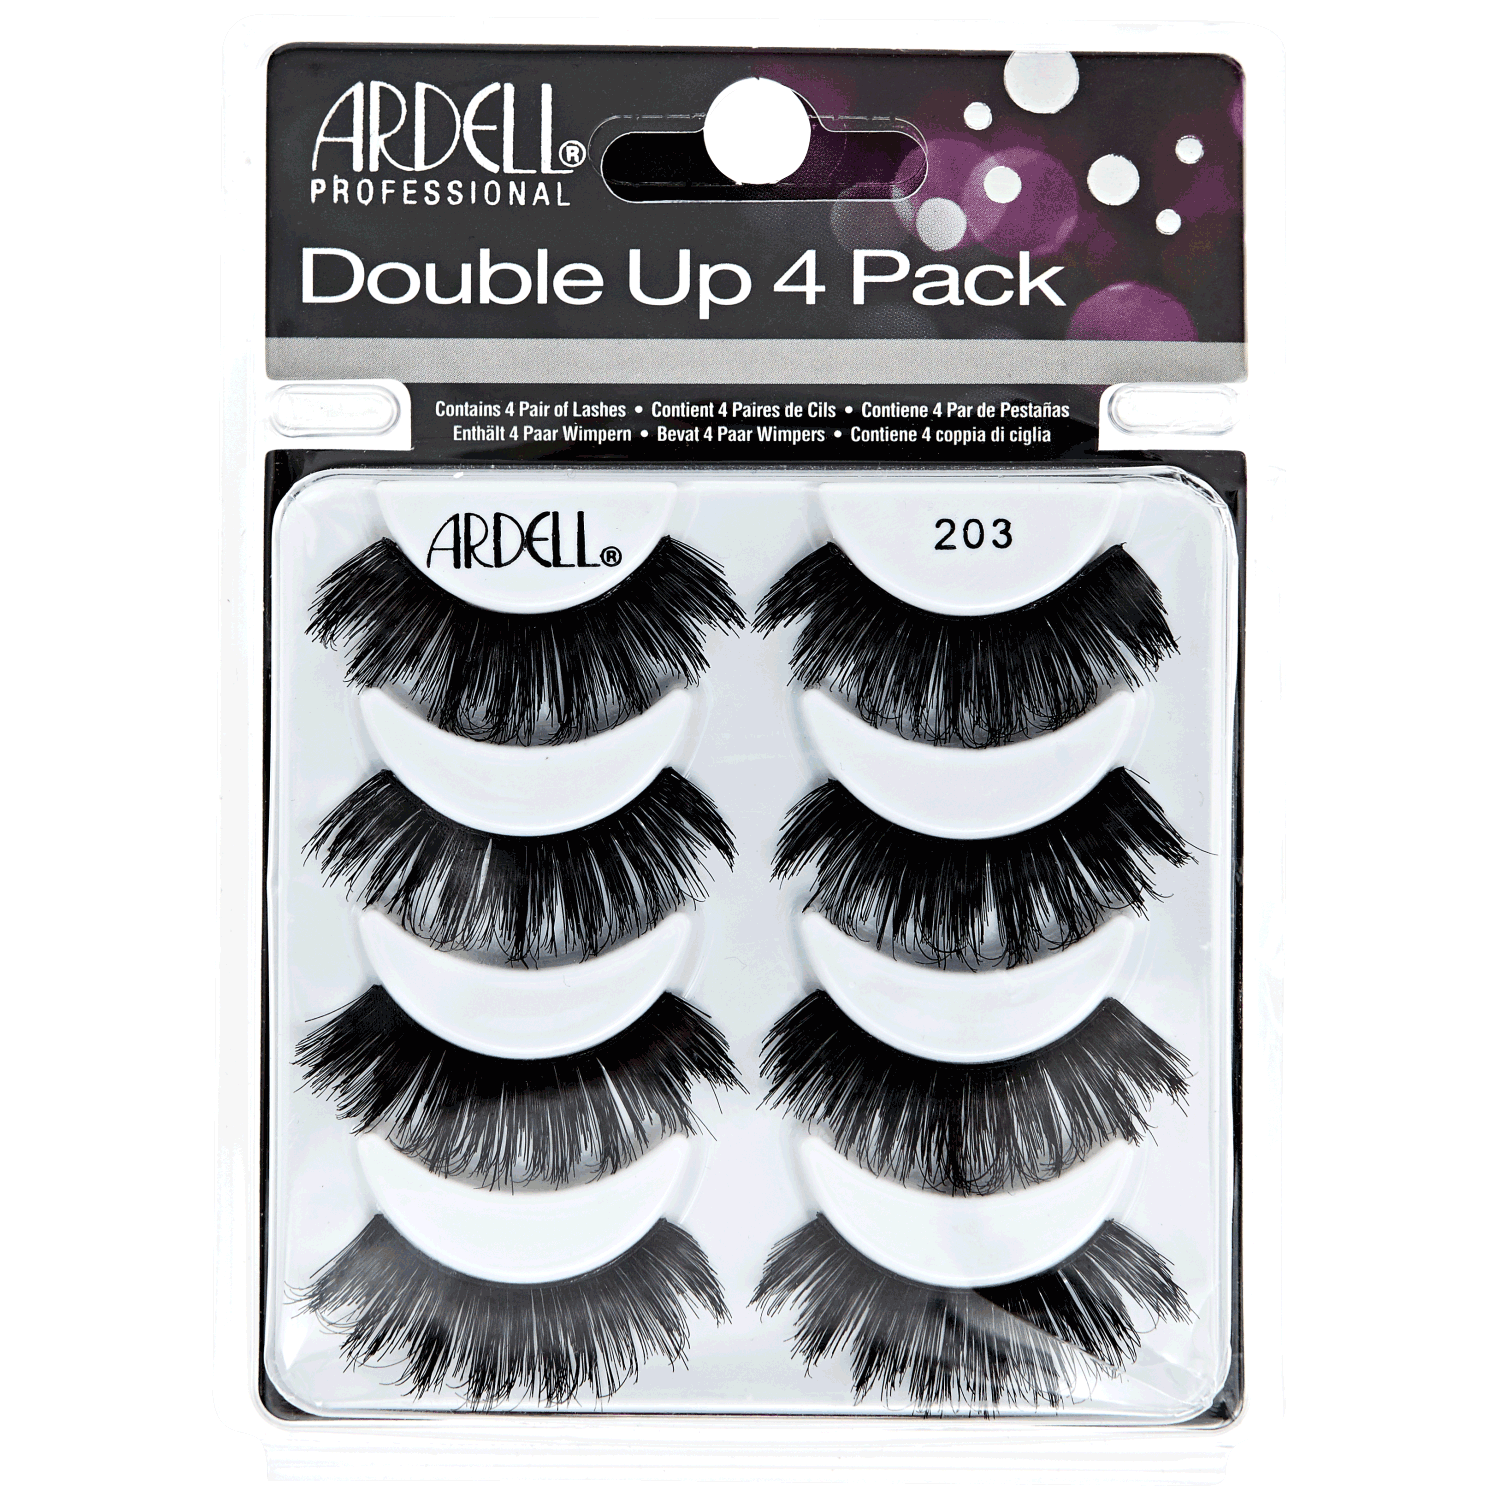 Sally Beauty coupon: Double Up 4 Pack #203 Lashes